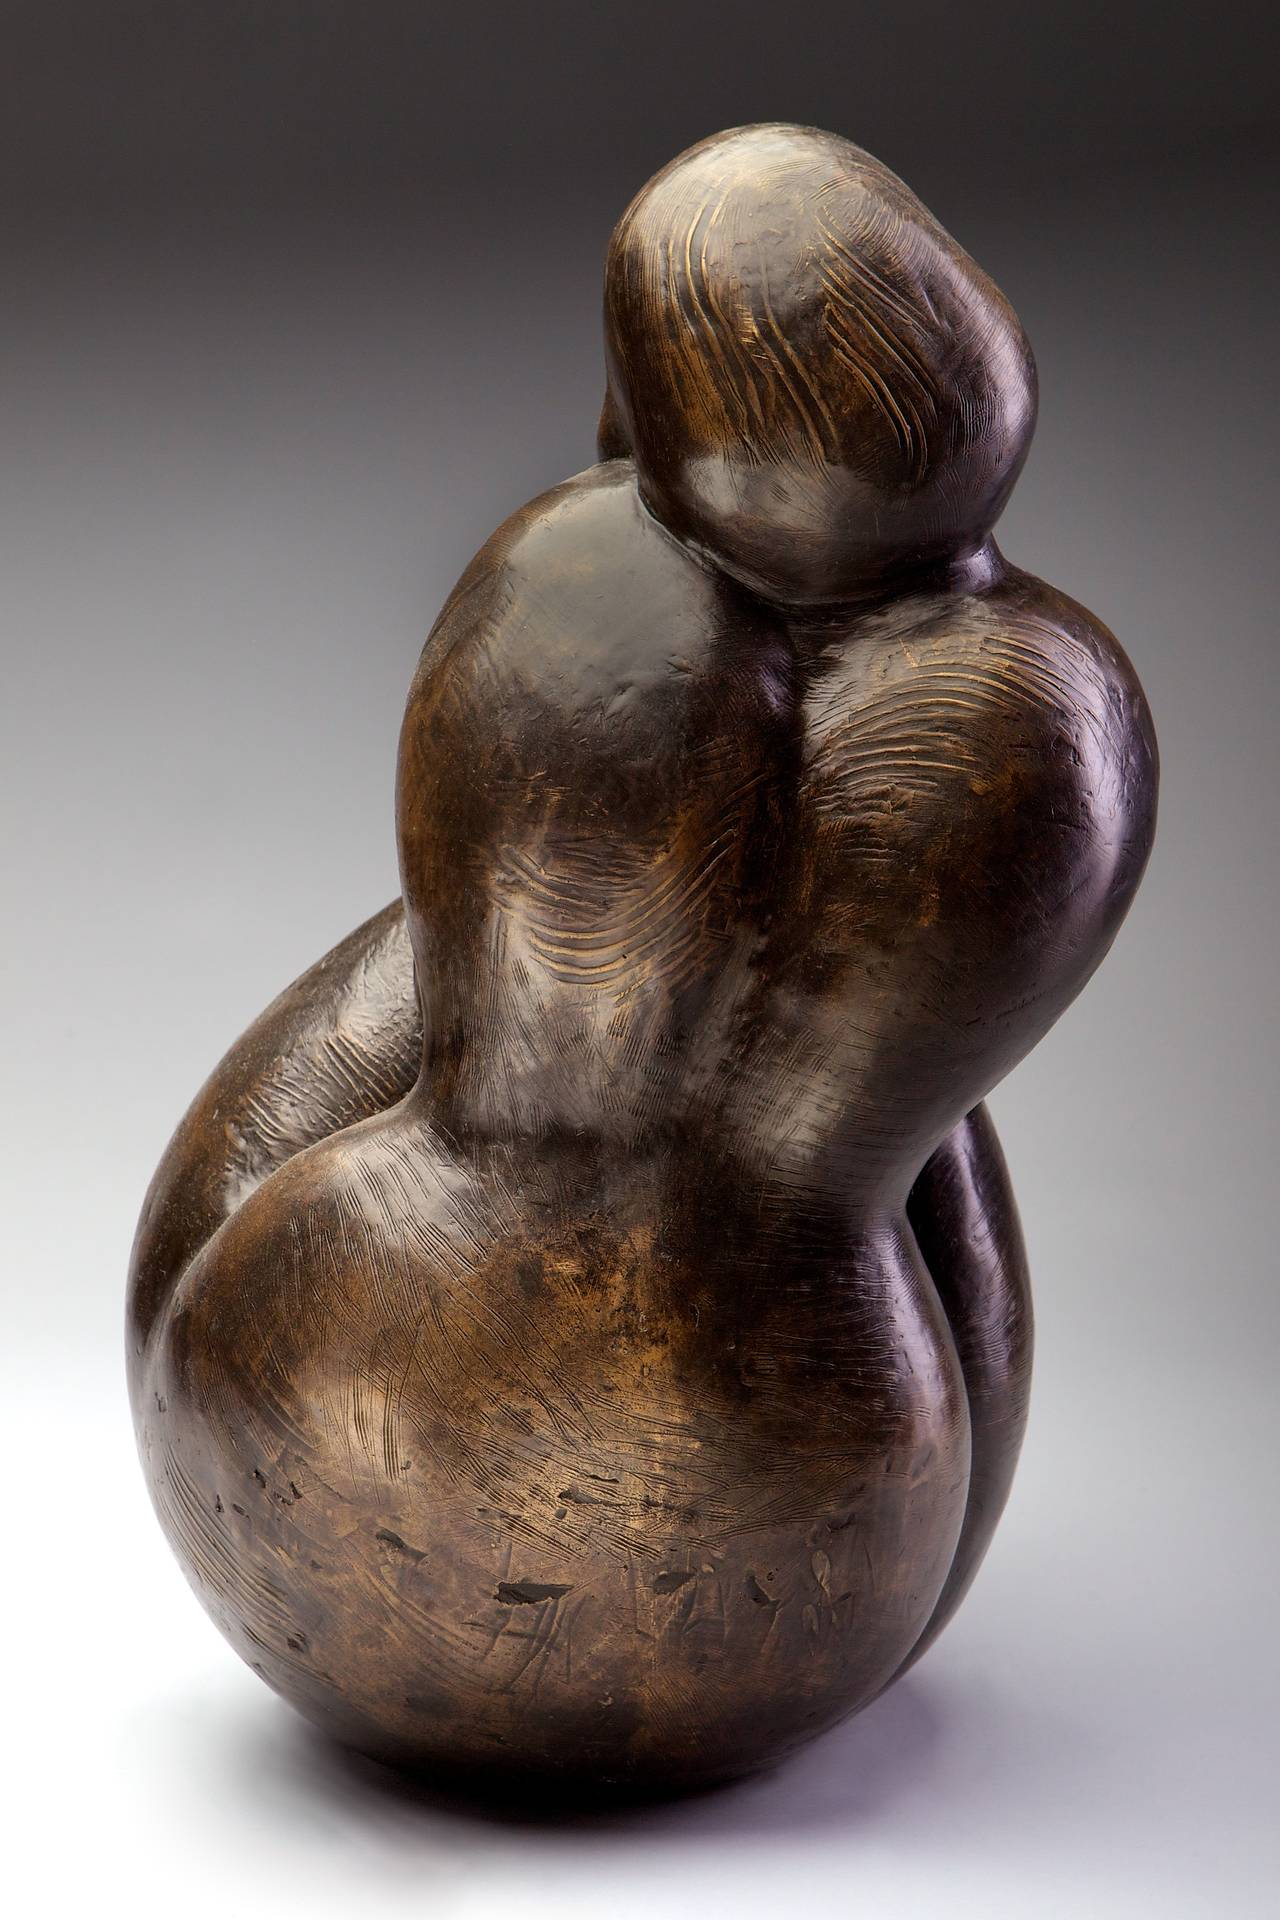 Wiggle My Toes - Modern Sculpture by Monica Wyatt